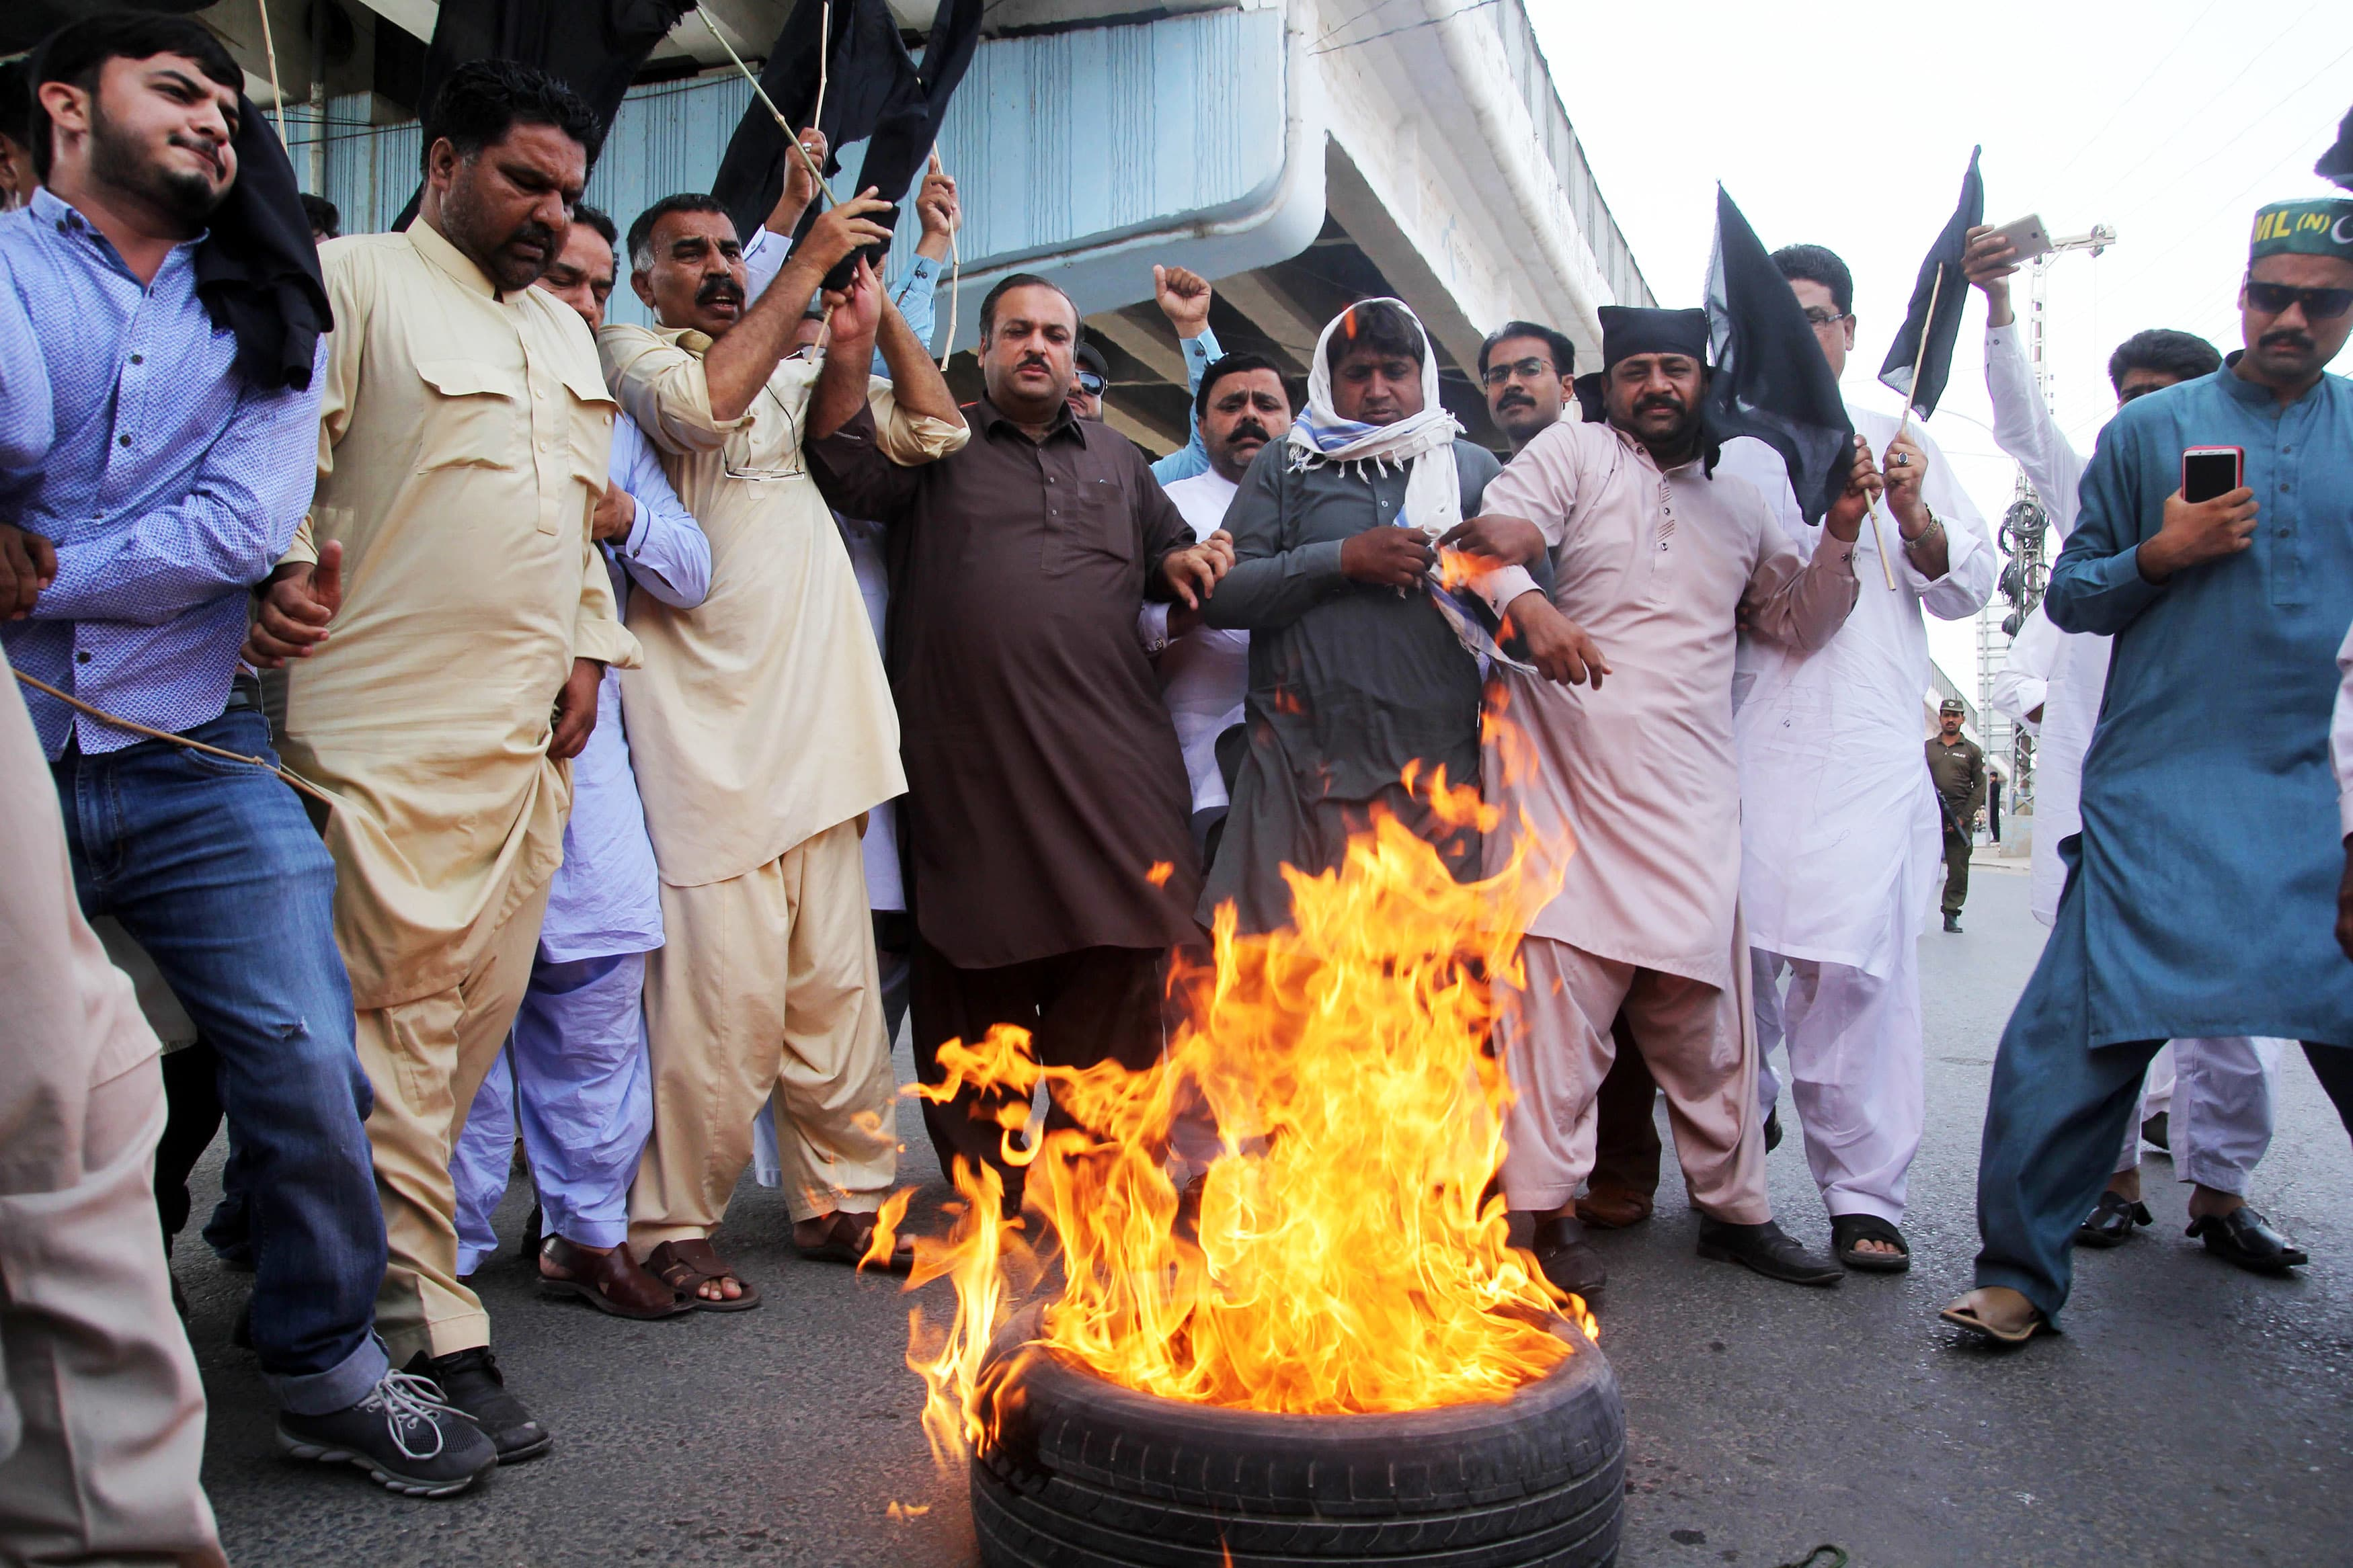 Activists of Pakistan Muslim League-Nawaz (PML-N) burn tyres after the sentencing decision against former prime minister Nawaz Sharif, during a protest in Multan on July 6, 2018.  Pakistan's former prime minister Nawaz Sharif was sentenced in absentia to 10 years in prison by a corruption court in Islamabad on July 6, lawyers said, dealing a serious blow to his party's troubled campaign ahead of July 25 elections.  / AFP PHOTO / SS MIRZA — AFP or licensors